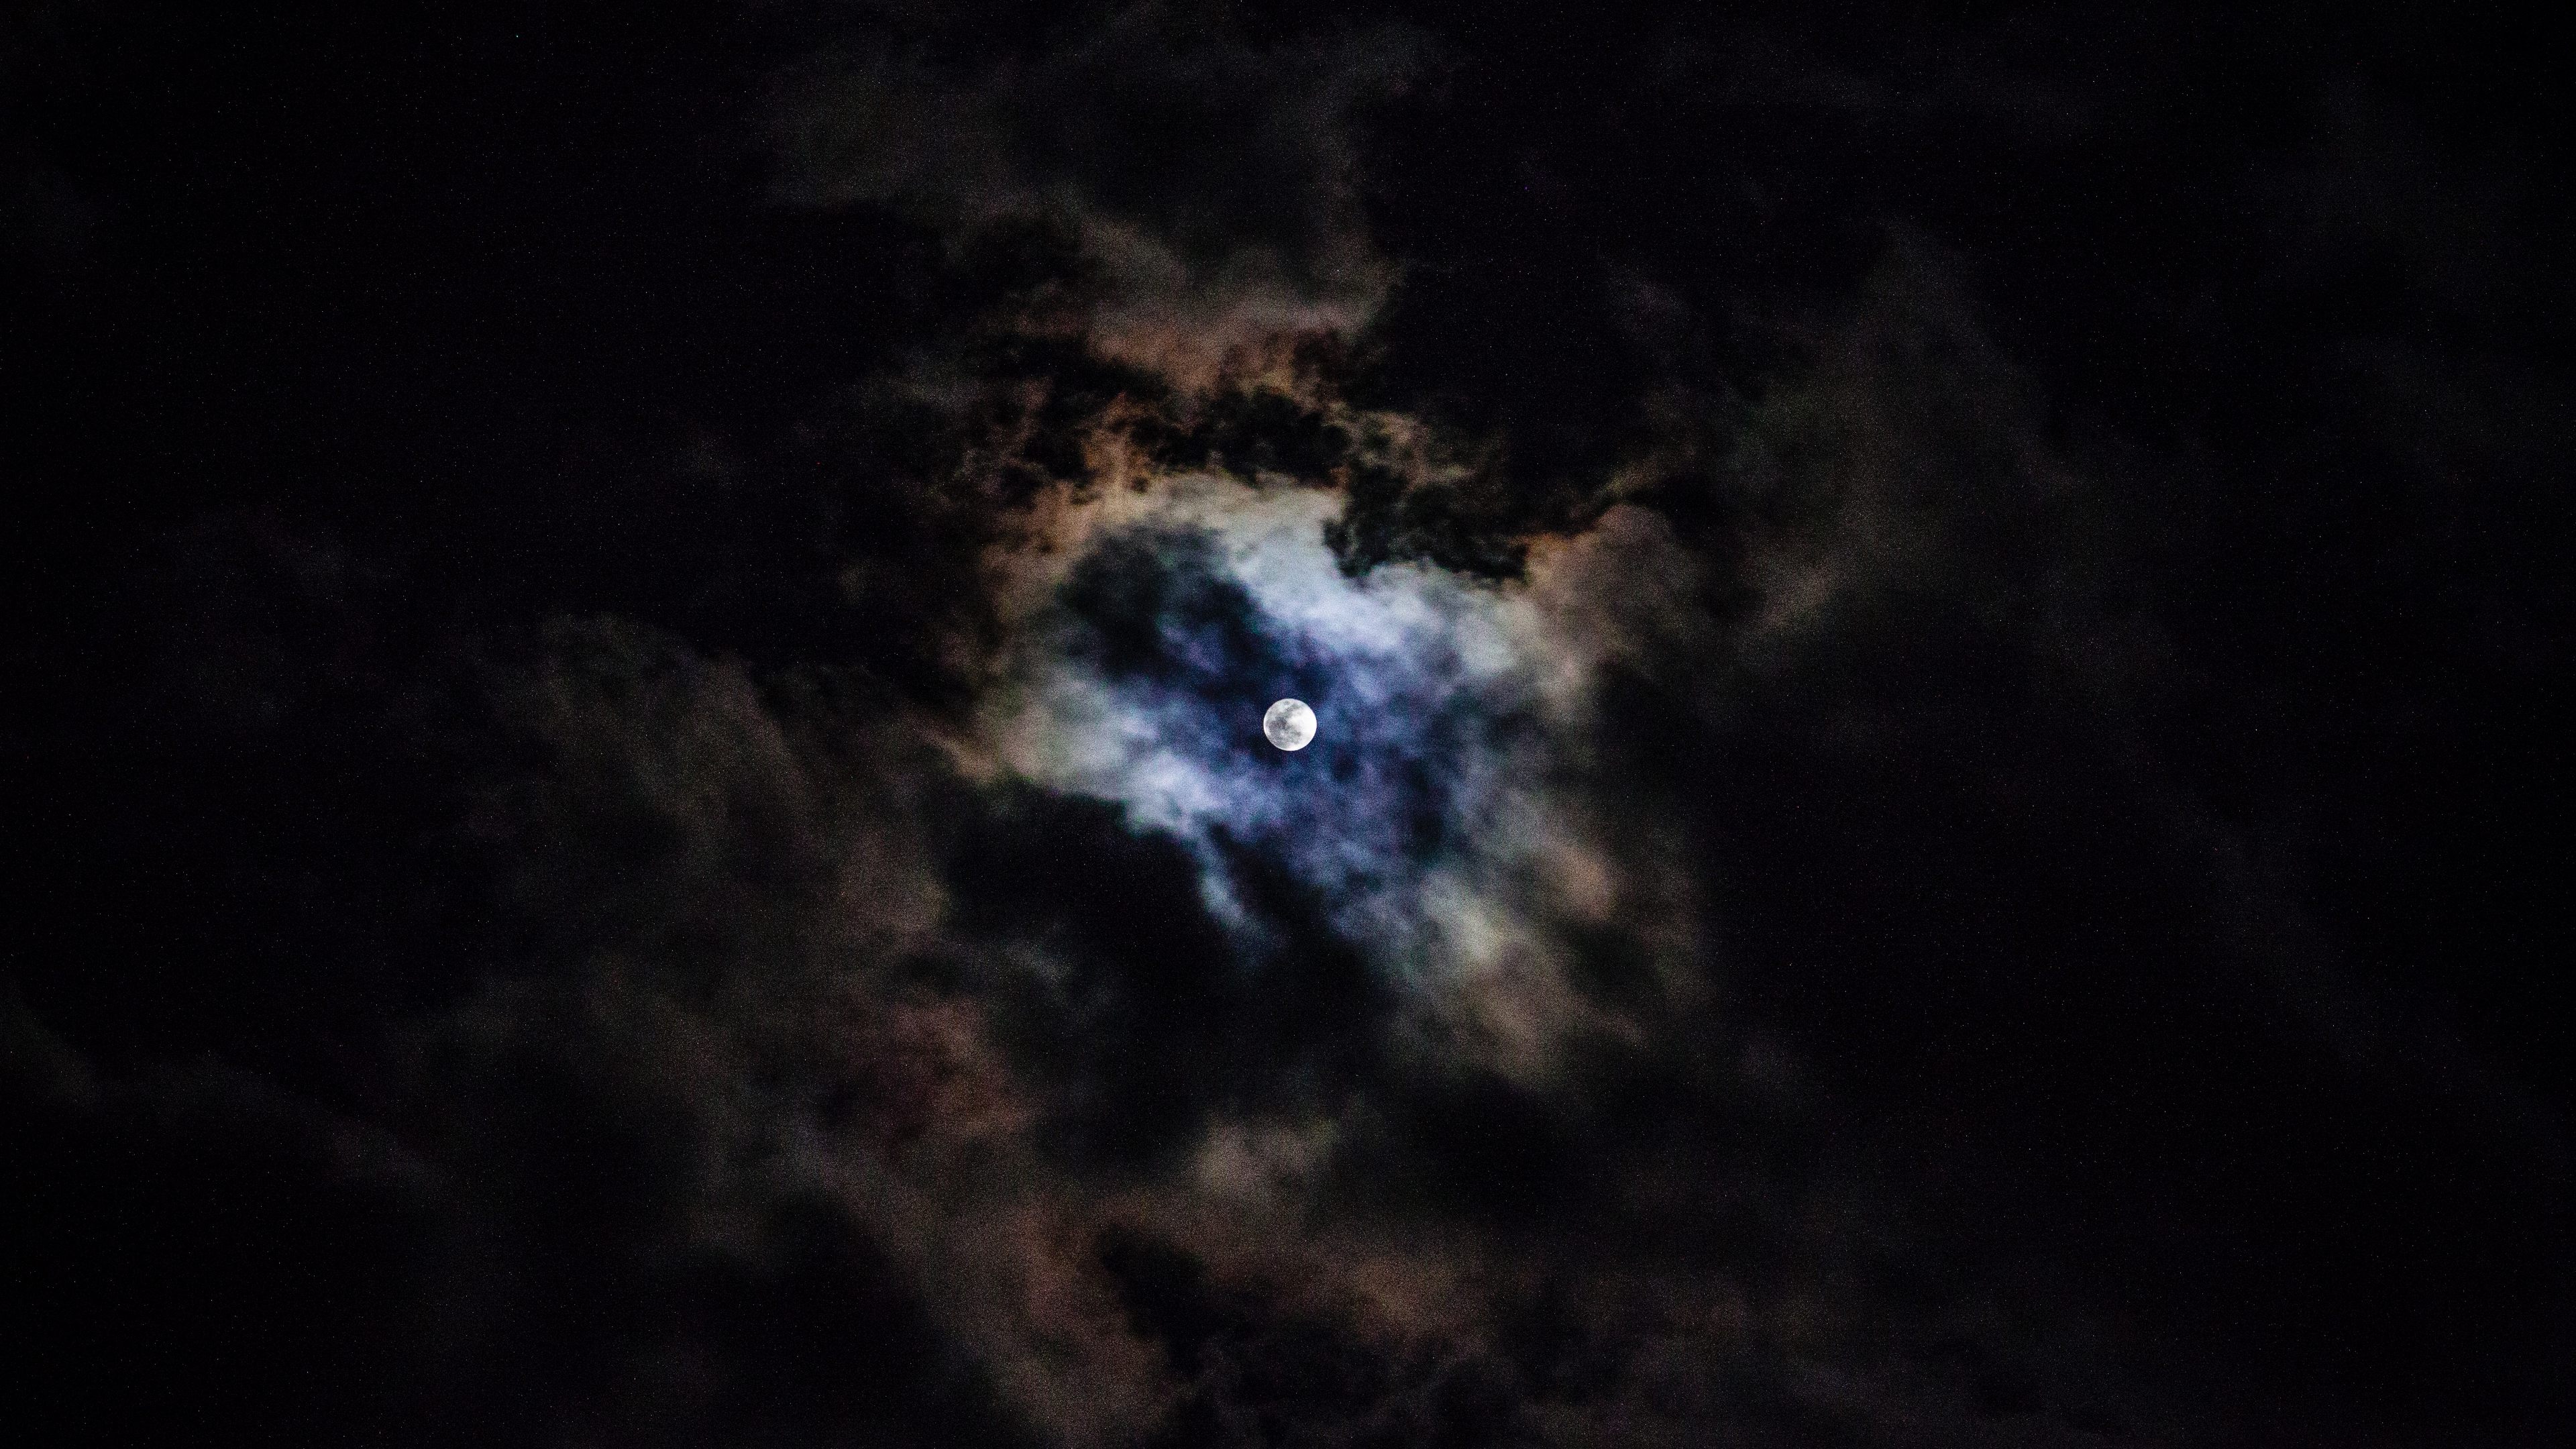 Wallpaper 4k Moon Night Clouds 4k Clouds Moon Night